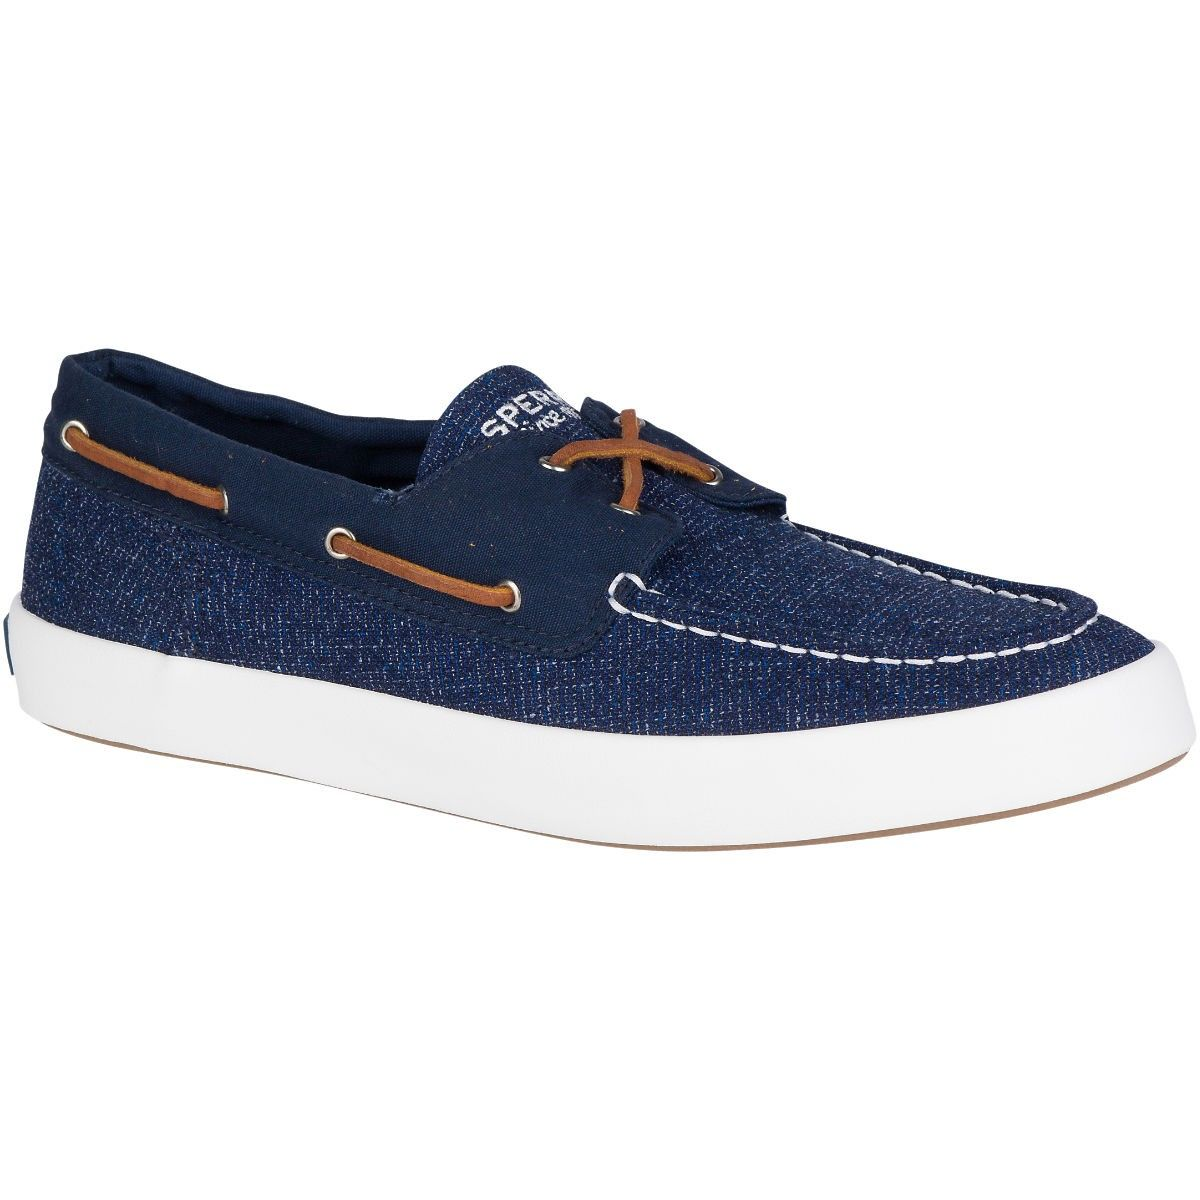 SPERRY Men's Wahoo 2-Eye Multi-Knit Sneaker - Navy. #sperry #